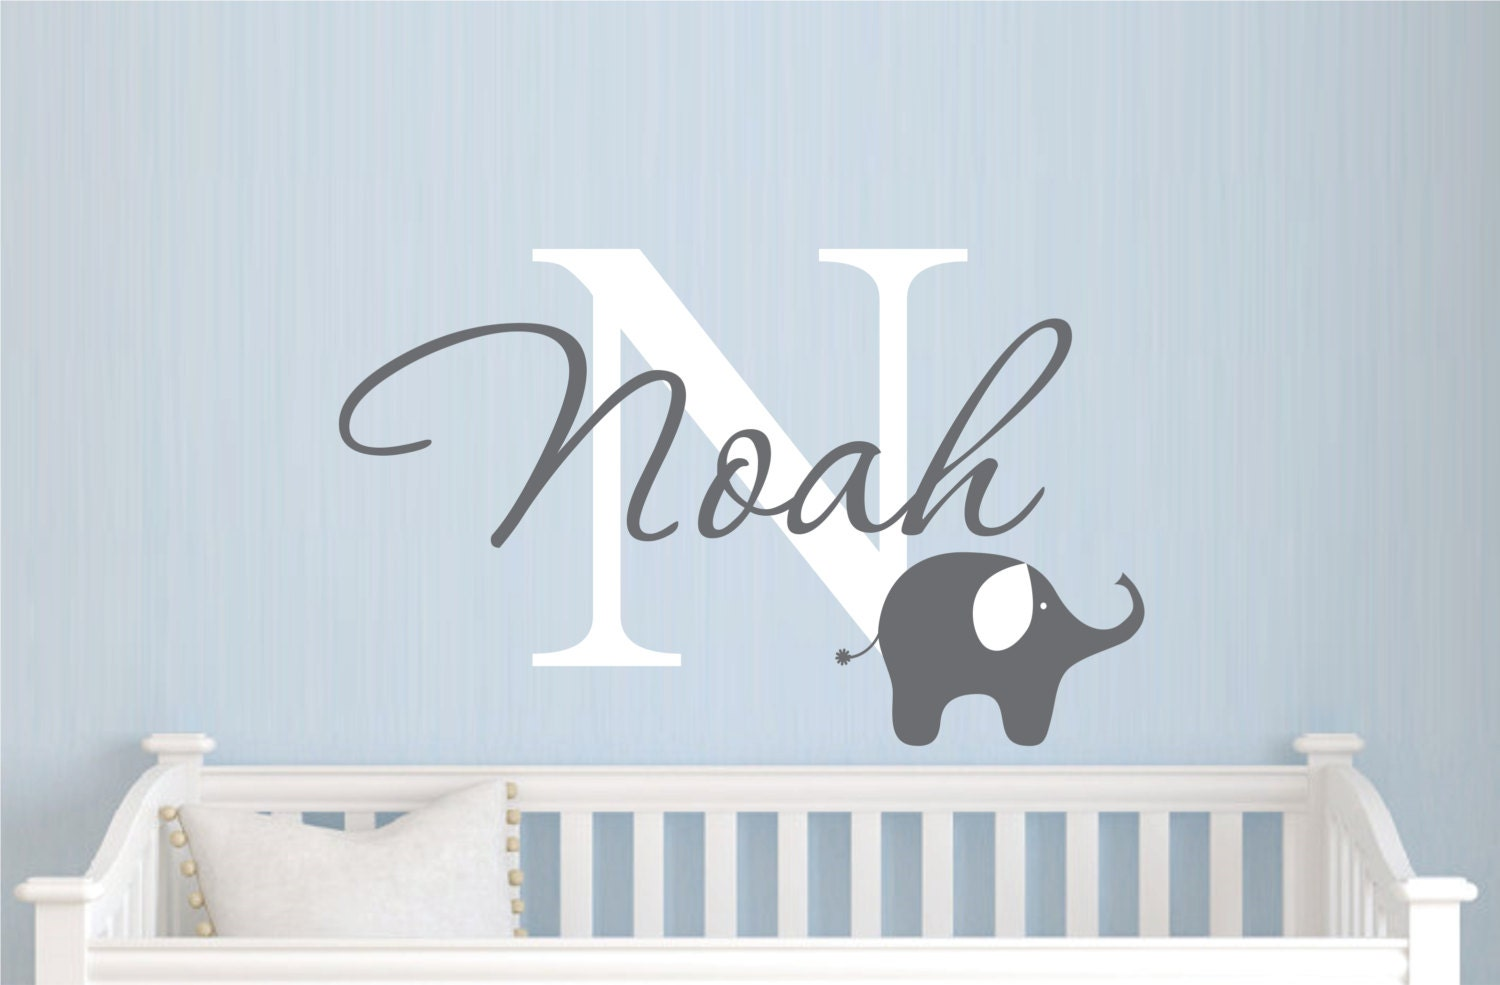 Childrens Name Elephant Wall Decal Boys Name Vinyl Wall - Nursery wall decals baby boy